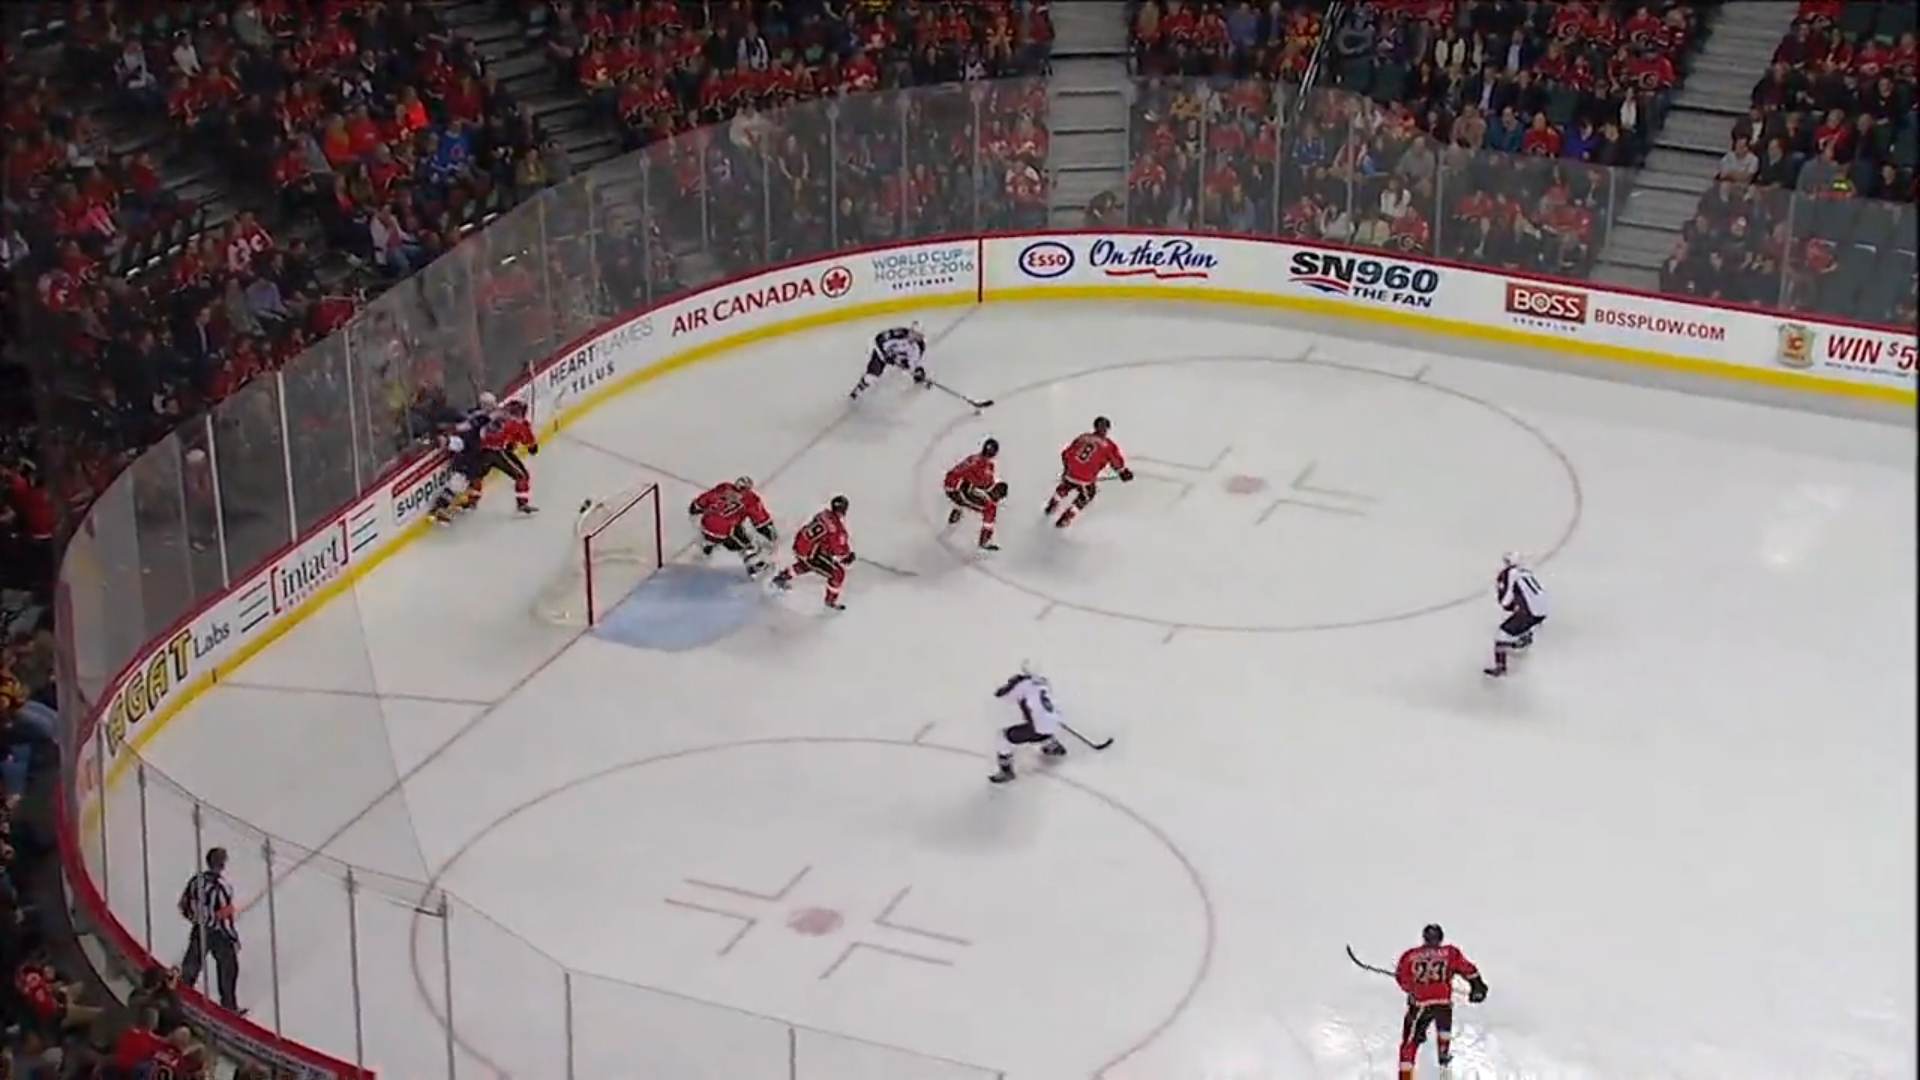 Patrick-Roy-Show-25-Top-Plays.jpg